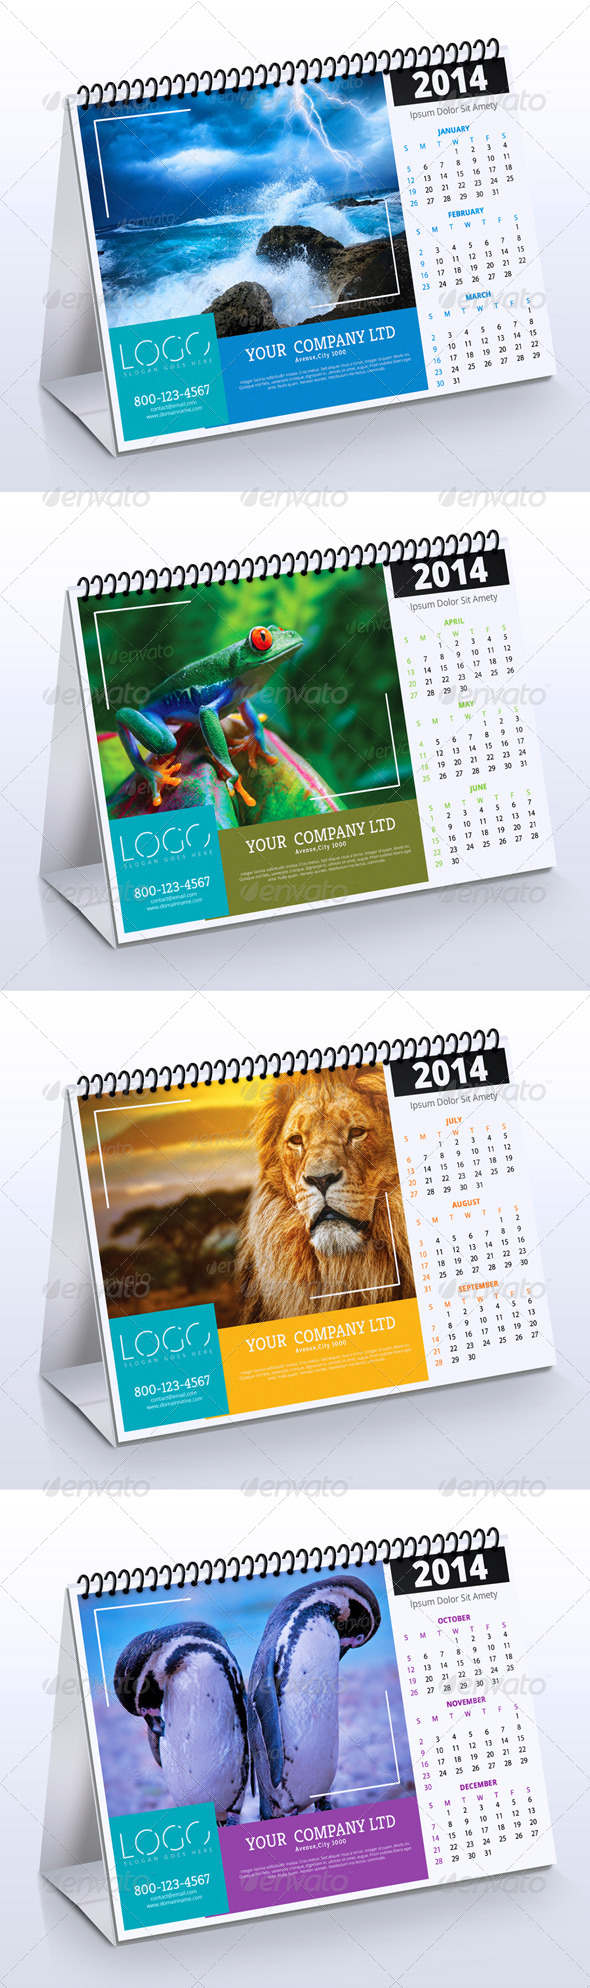 2014 Desk Calendar Vol.2 - Calendars Stationery